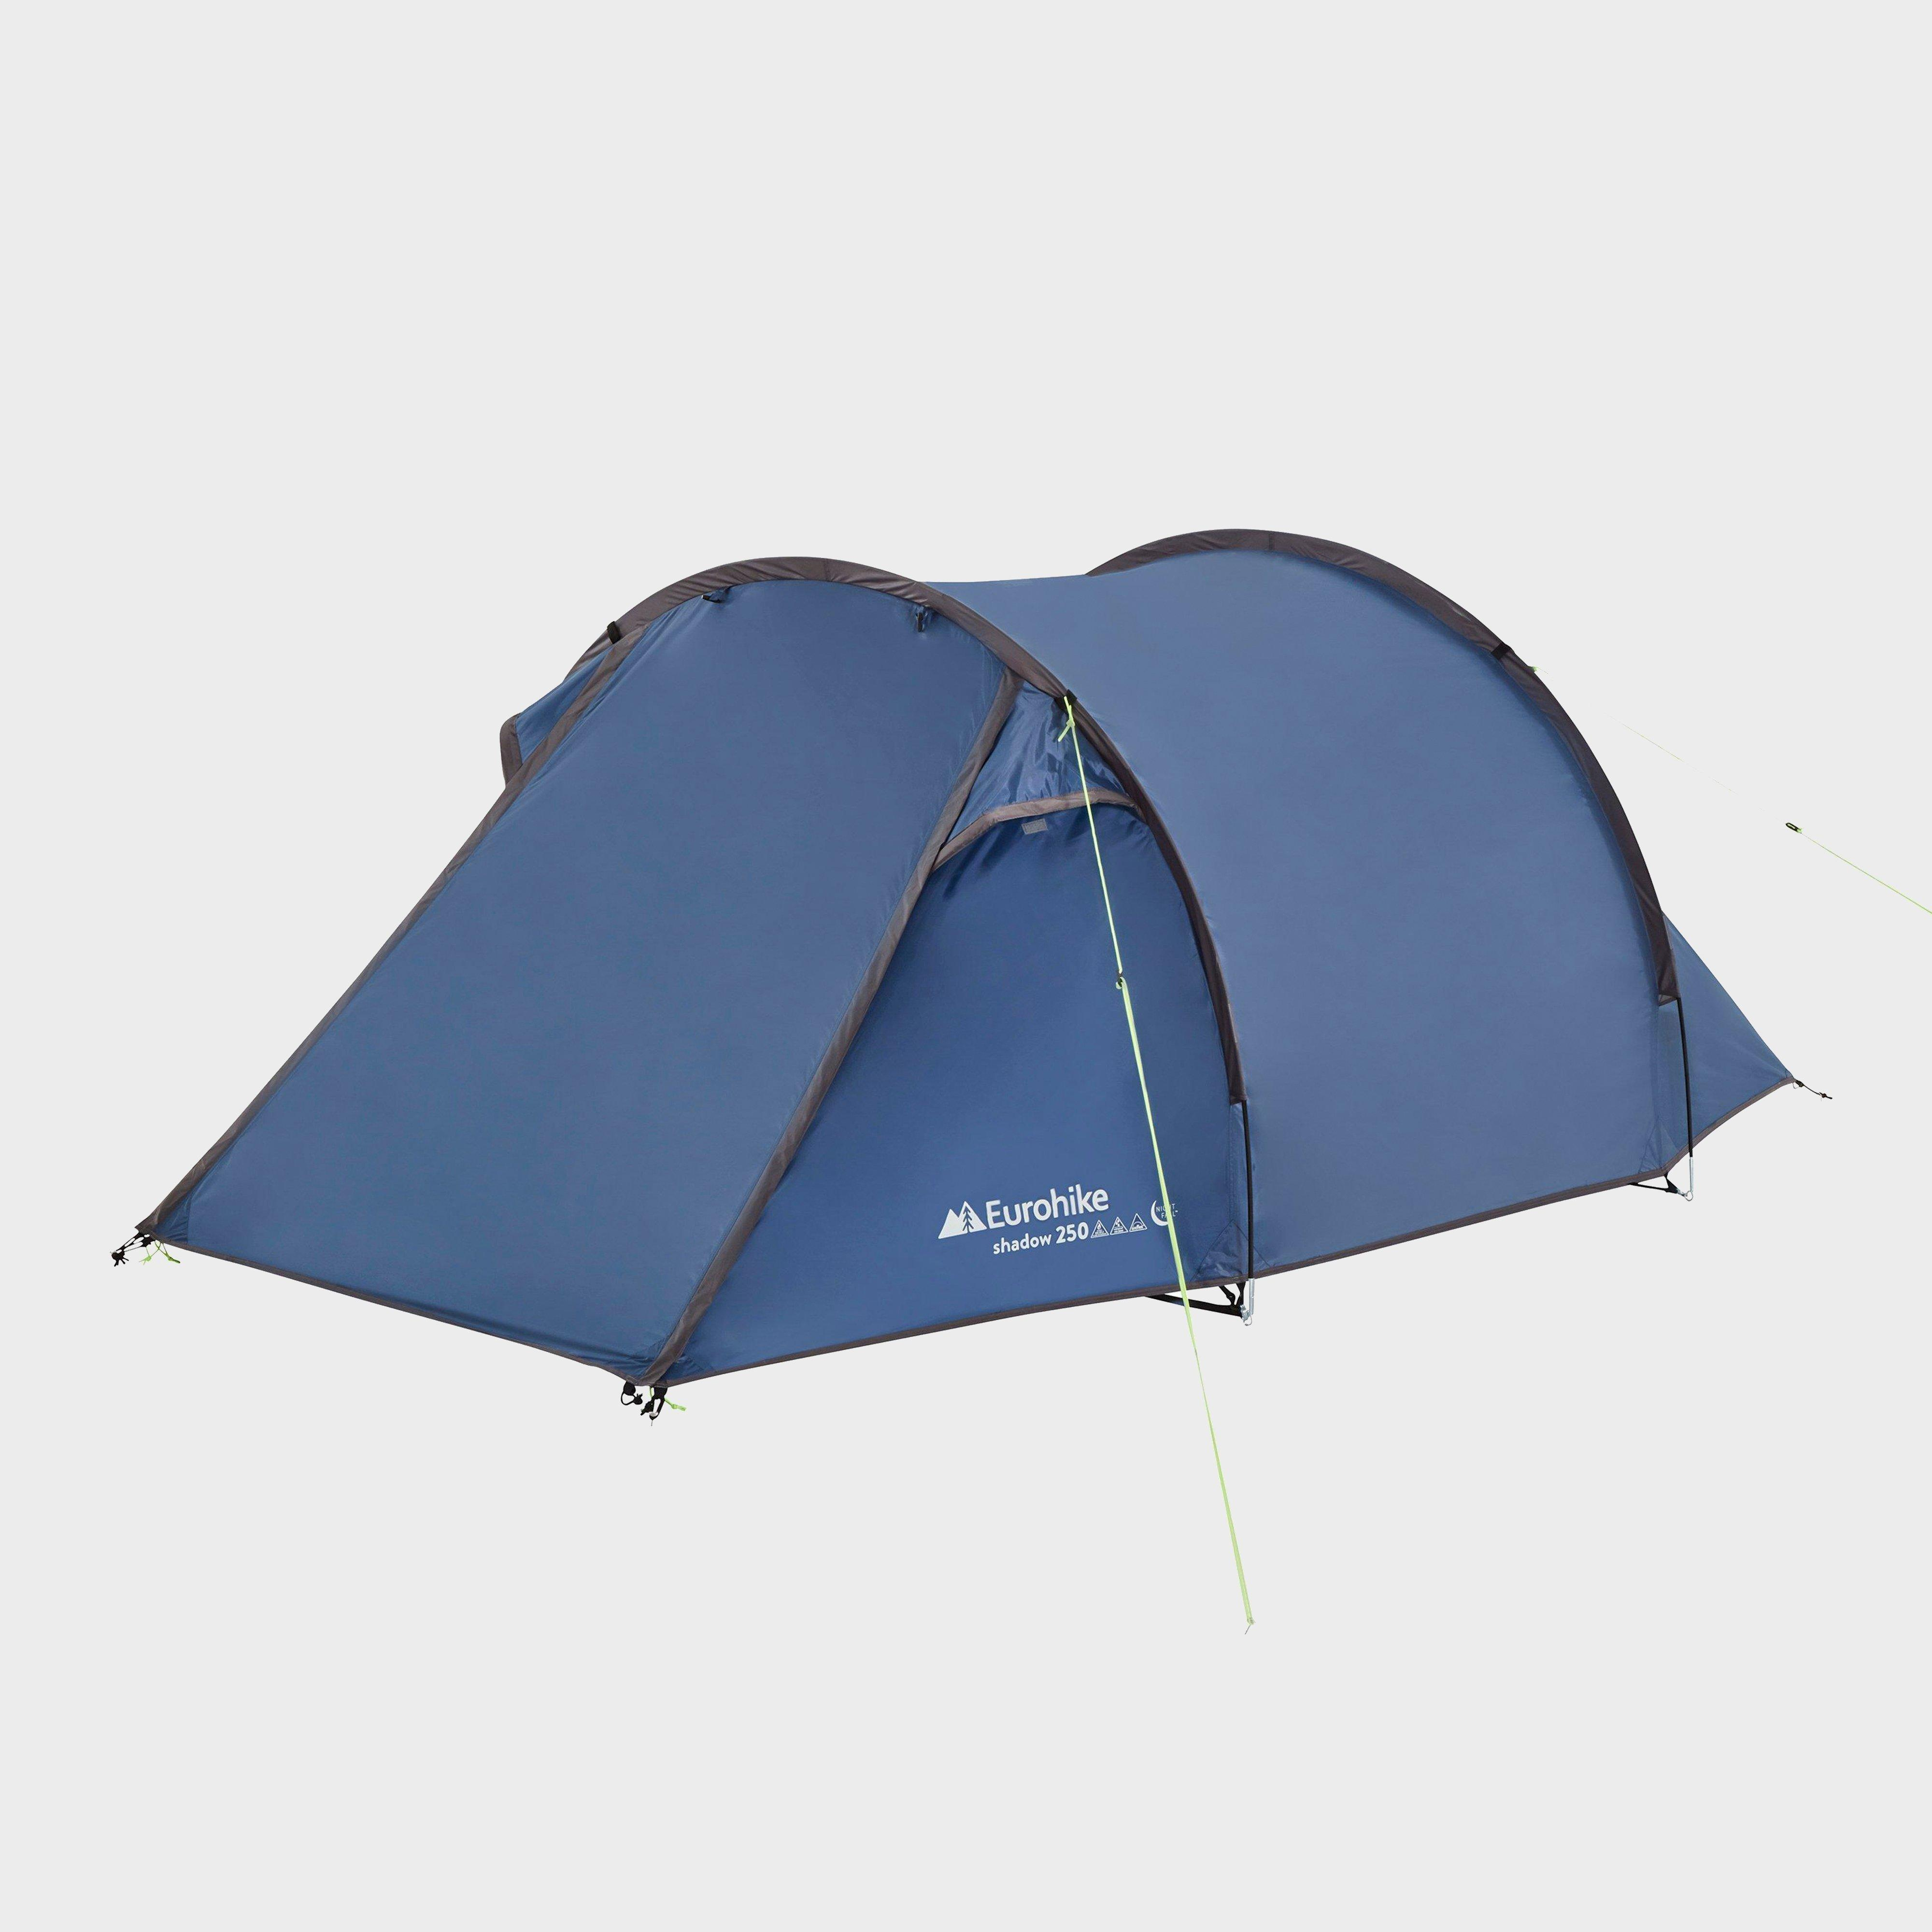 Eurohike Eurohike Shadow 250 Nightfall Tunnel Tent - Blue, Blue